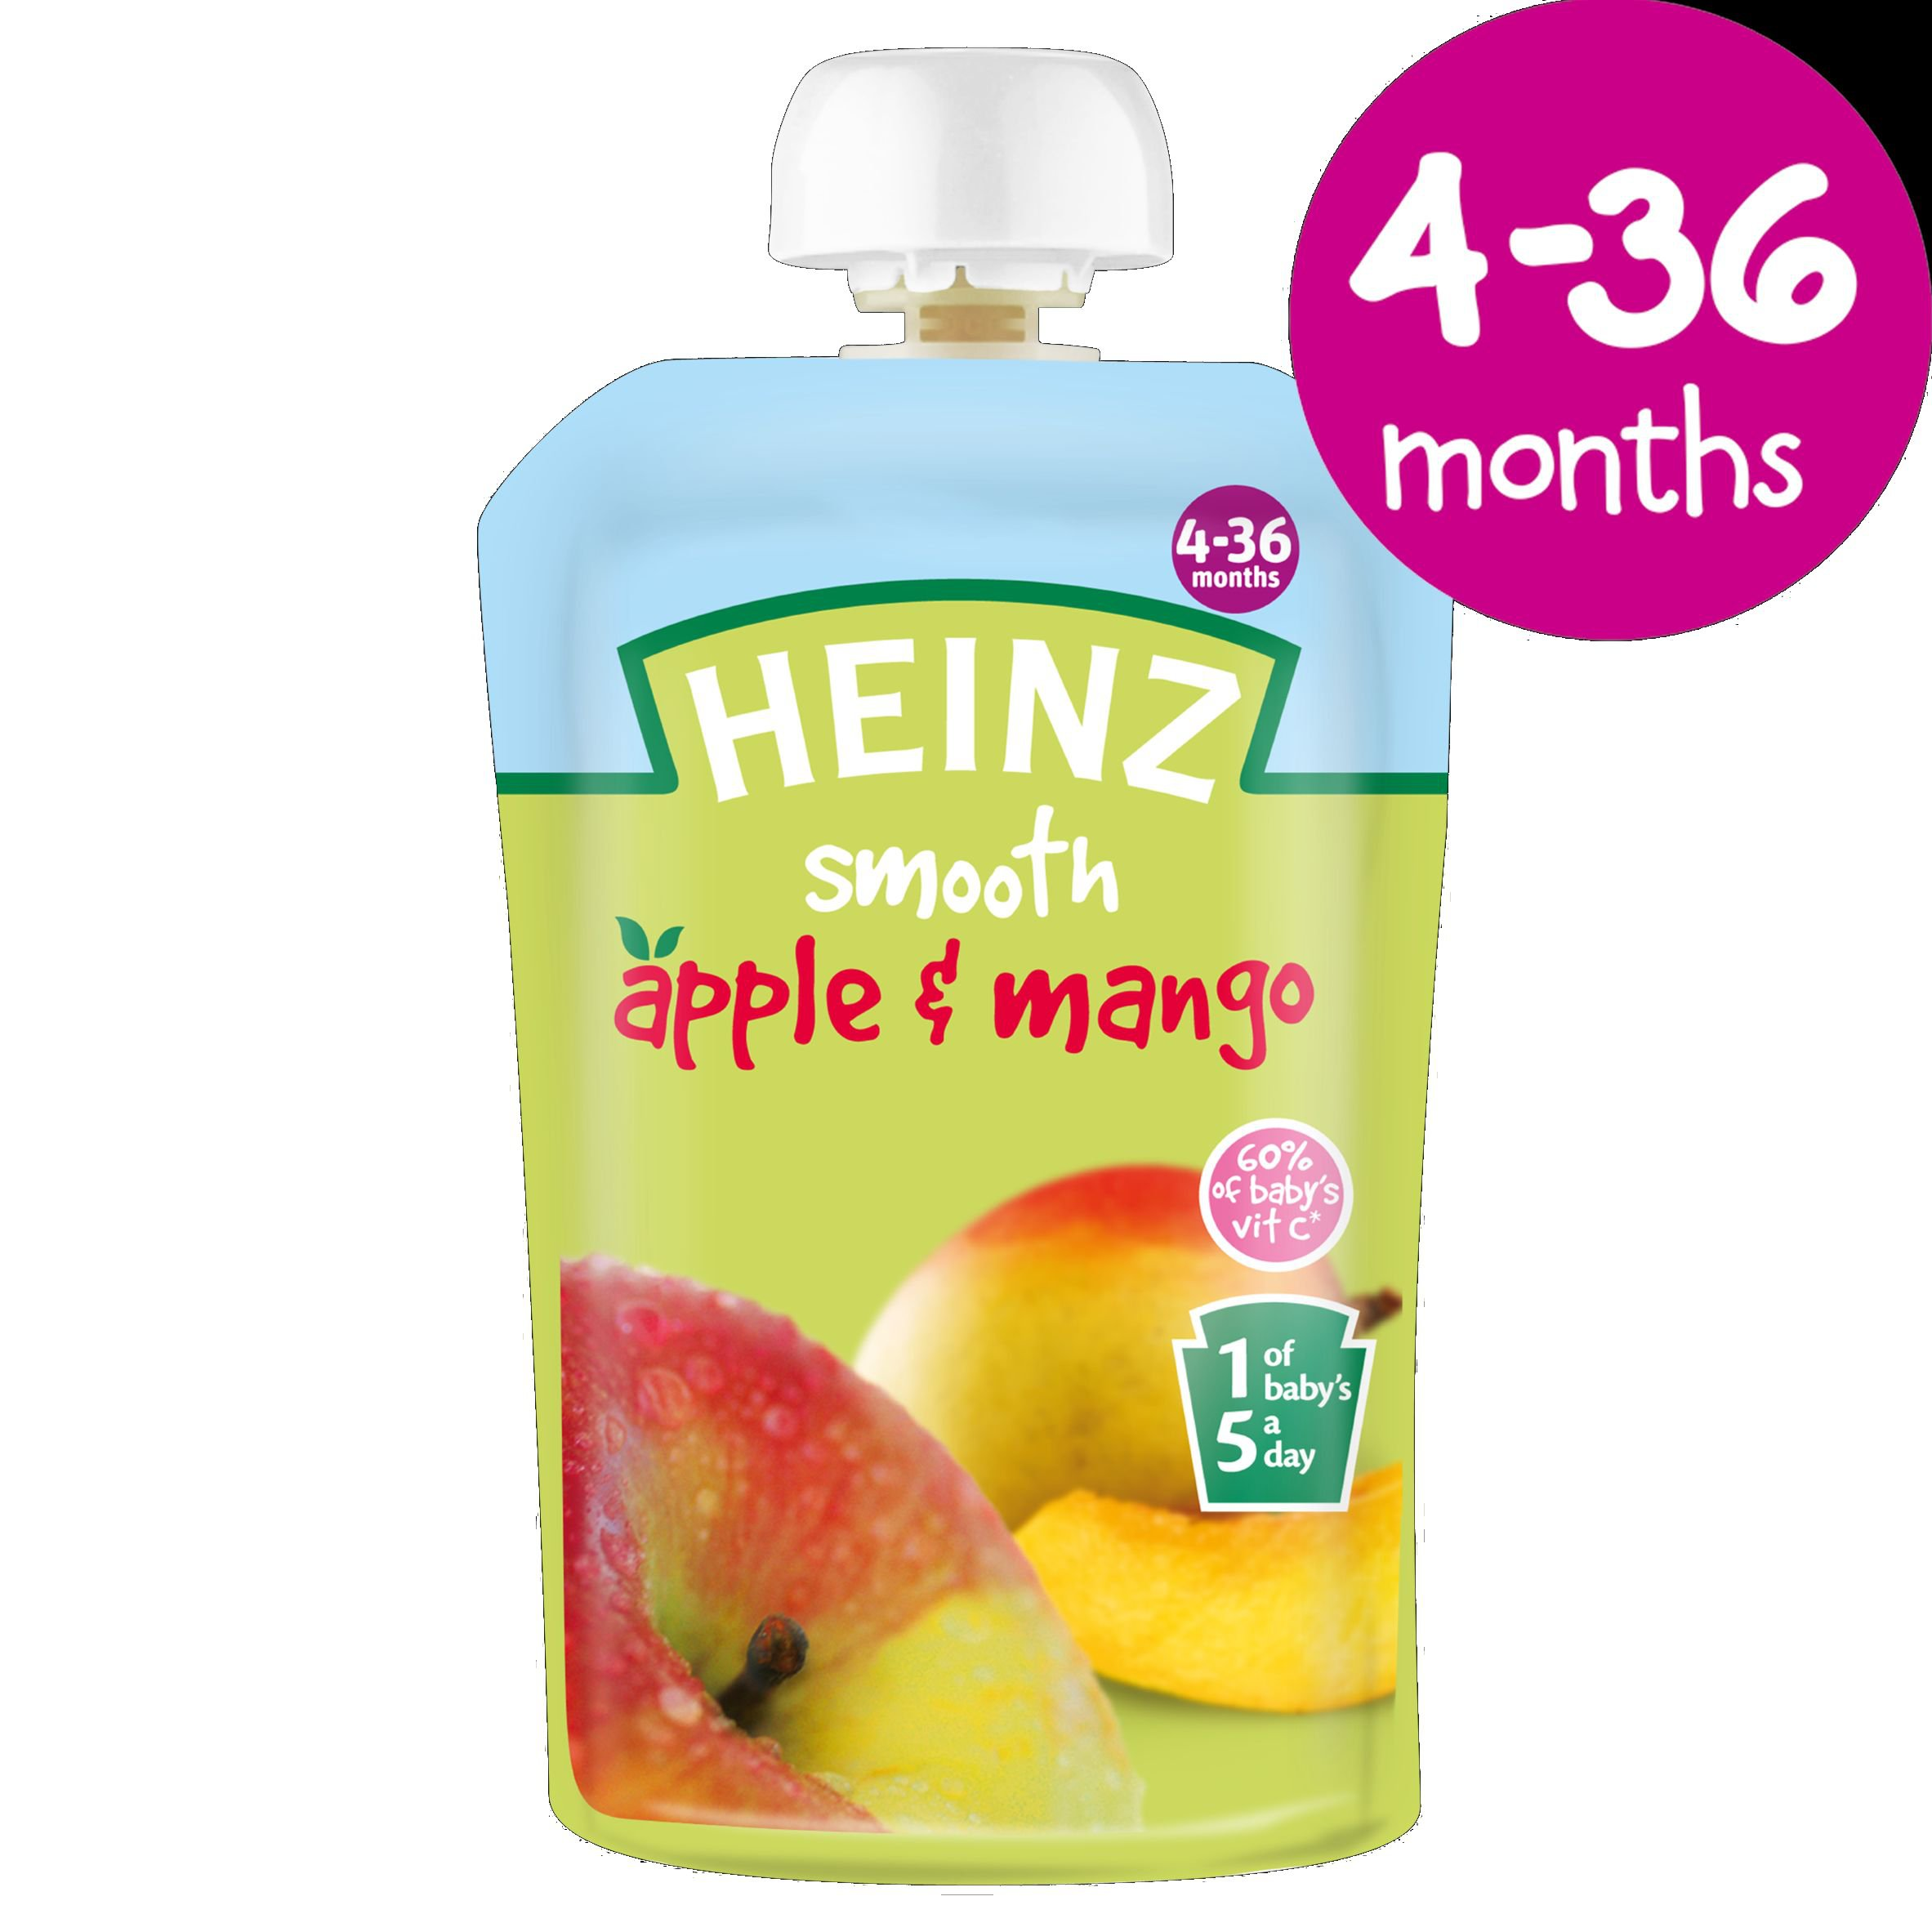 Heinz Apple and Mango Fruit Pouch 4-36 Months 100 g (Pack of 6) by Heinz (Image #2)